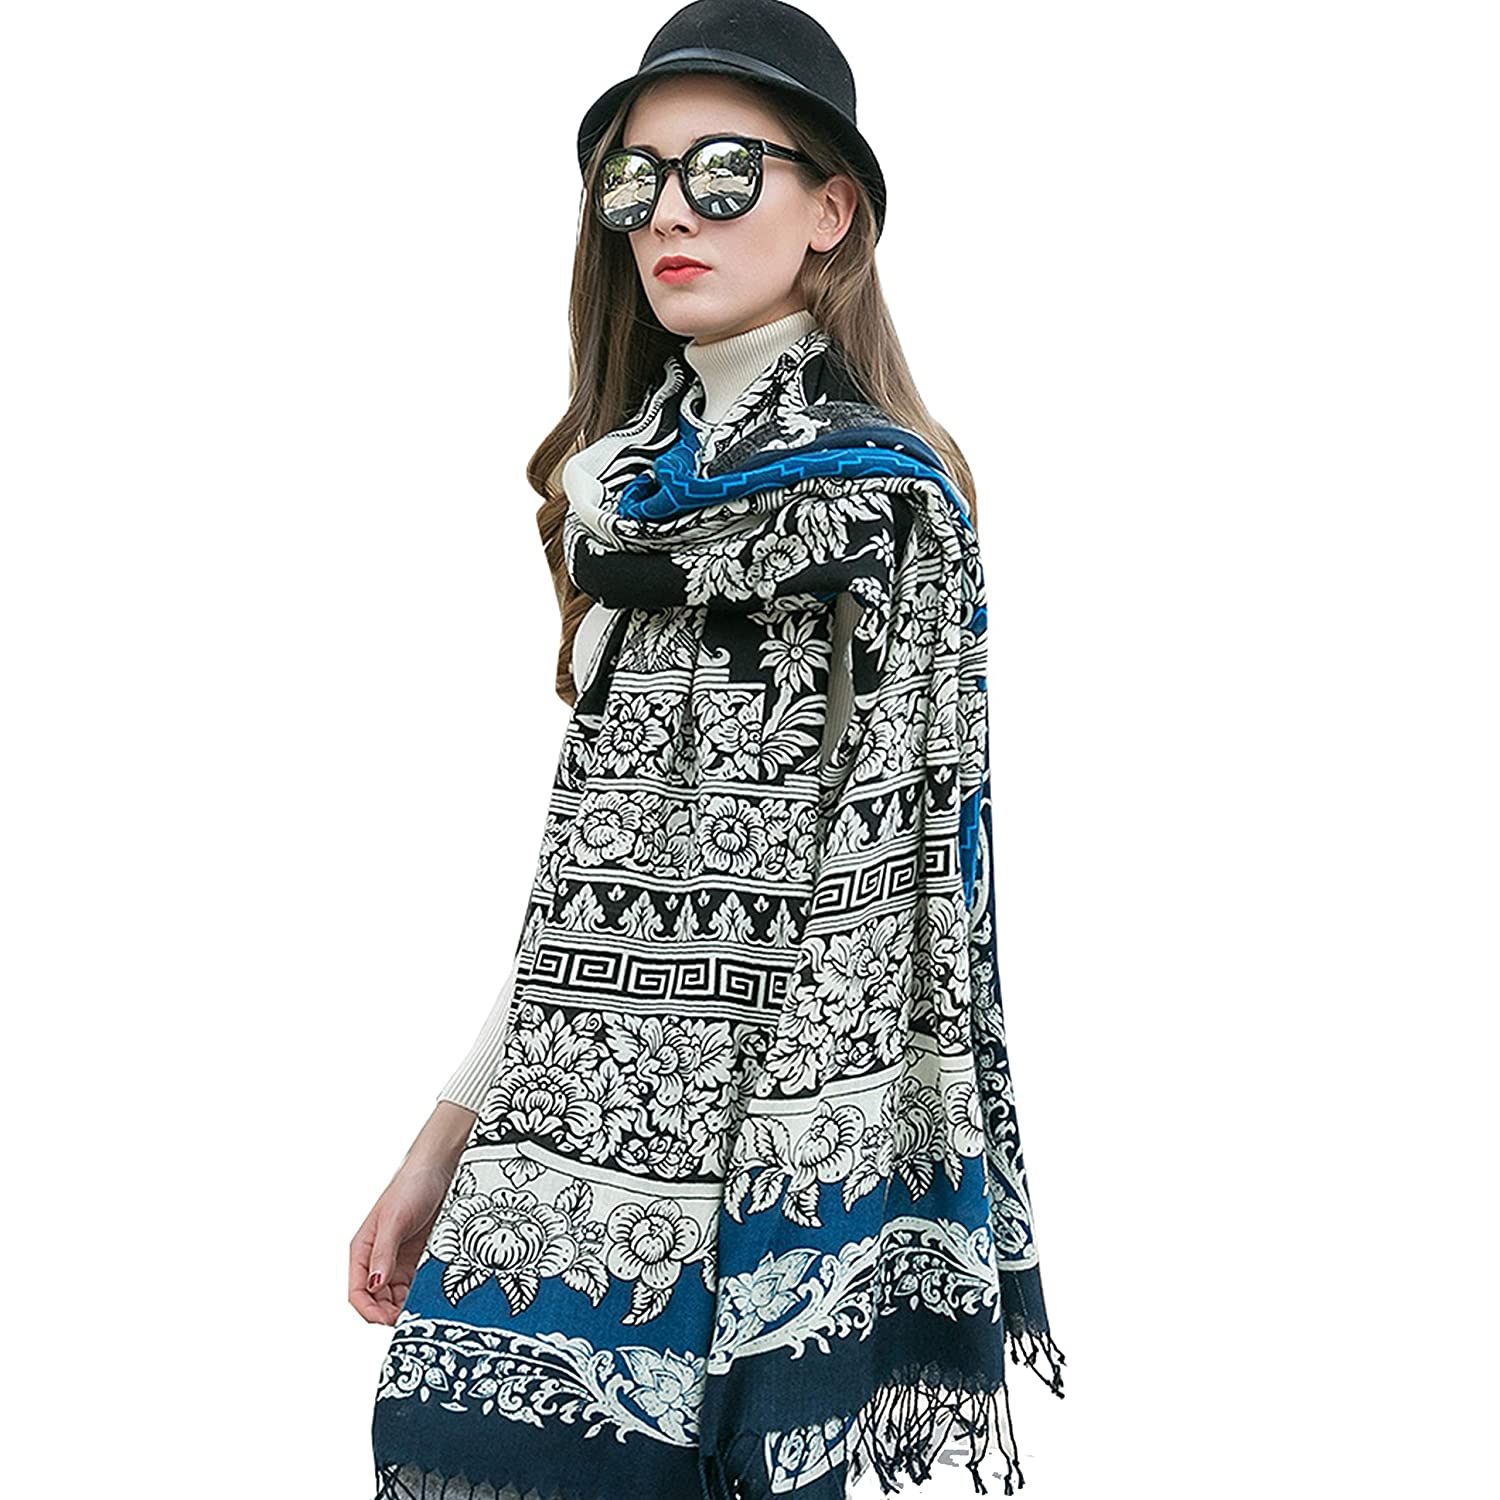 bluee DANA XU Pure Wool Ponchos Blanket for Women Large Pashmina Shawls and Wraps (bluee&White)